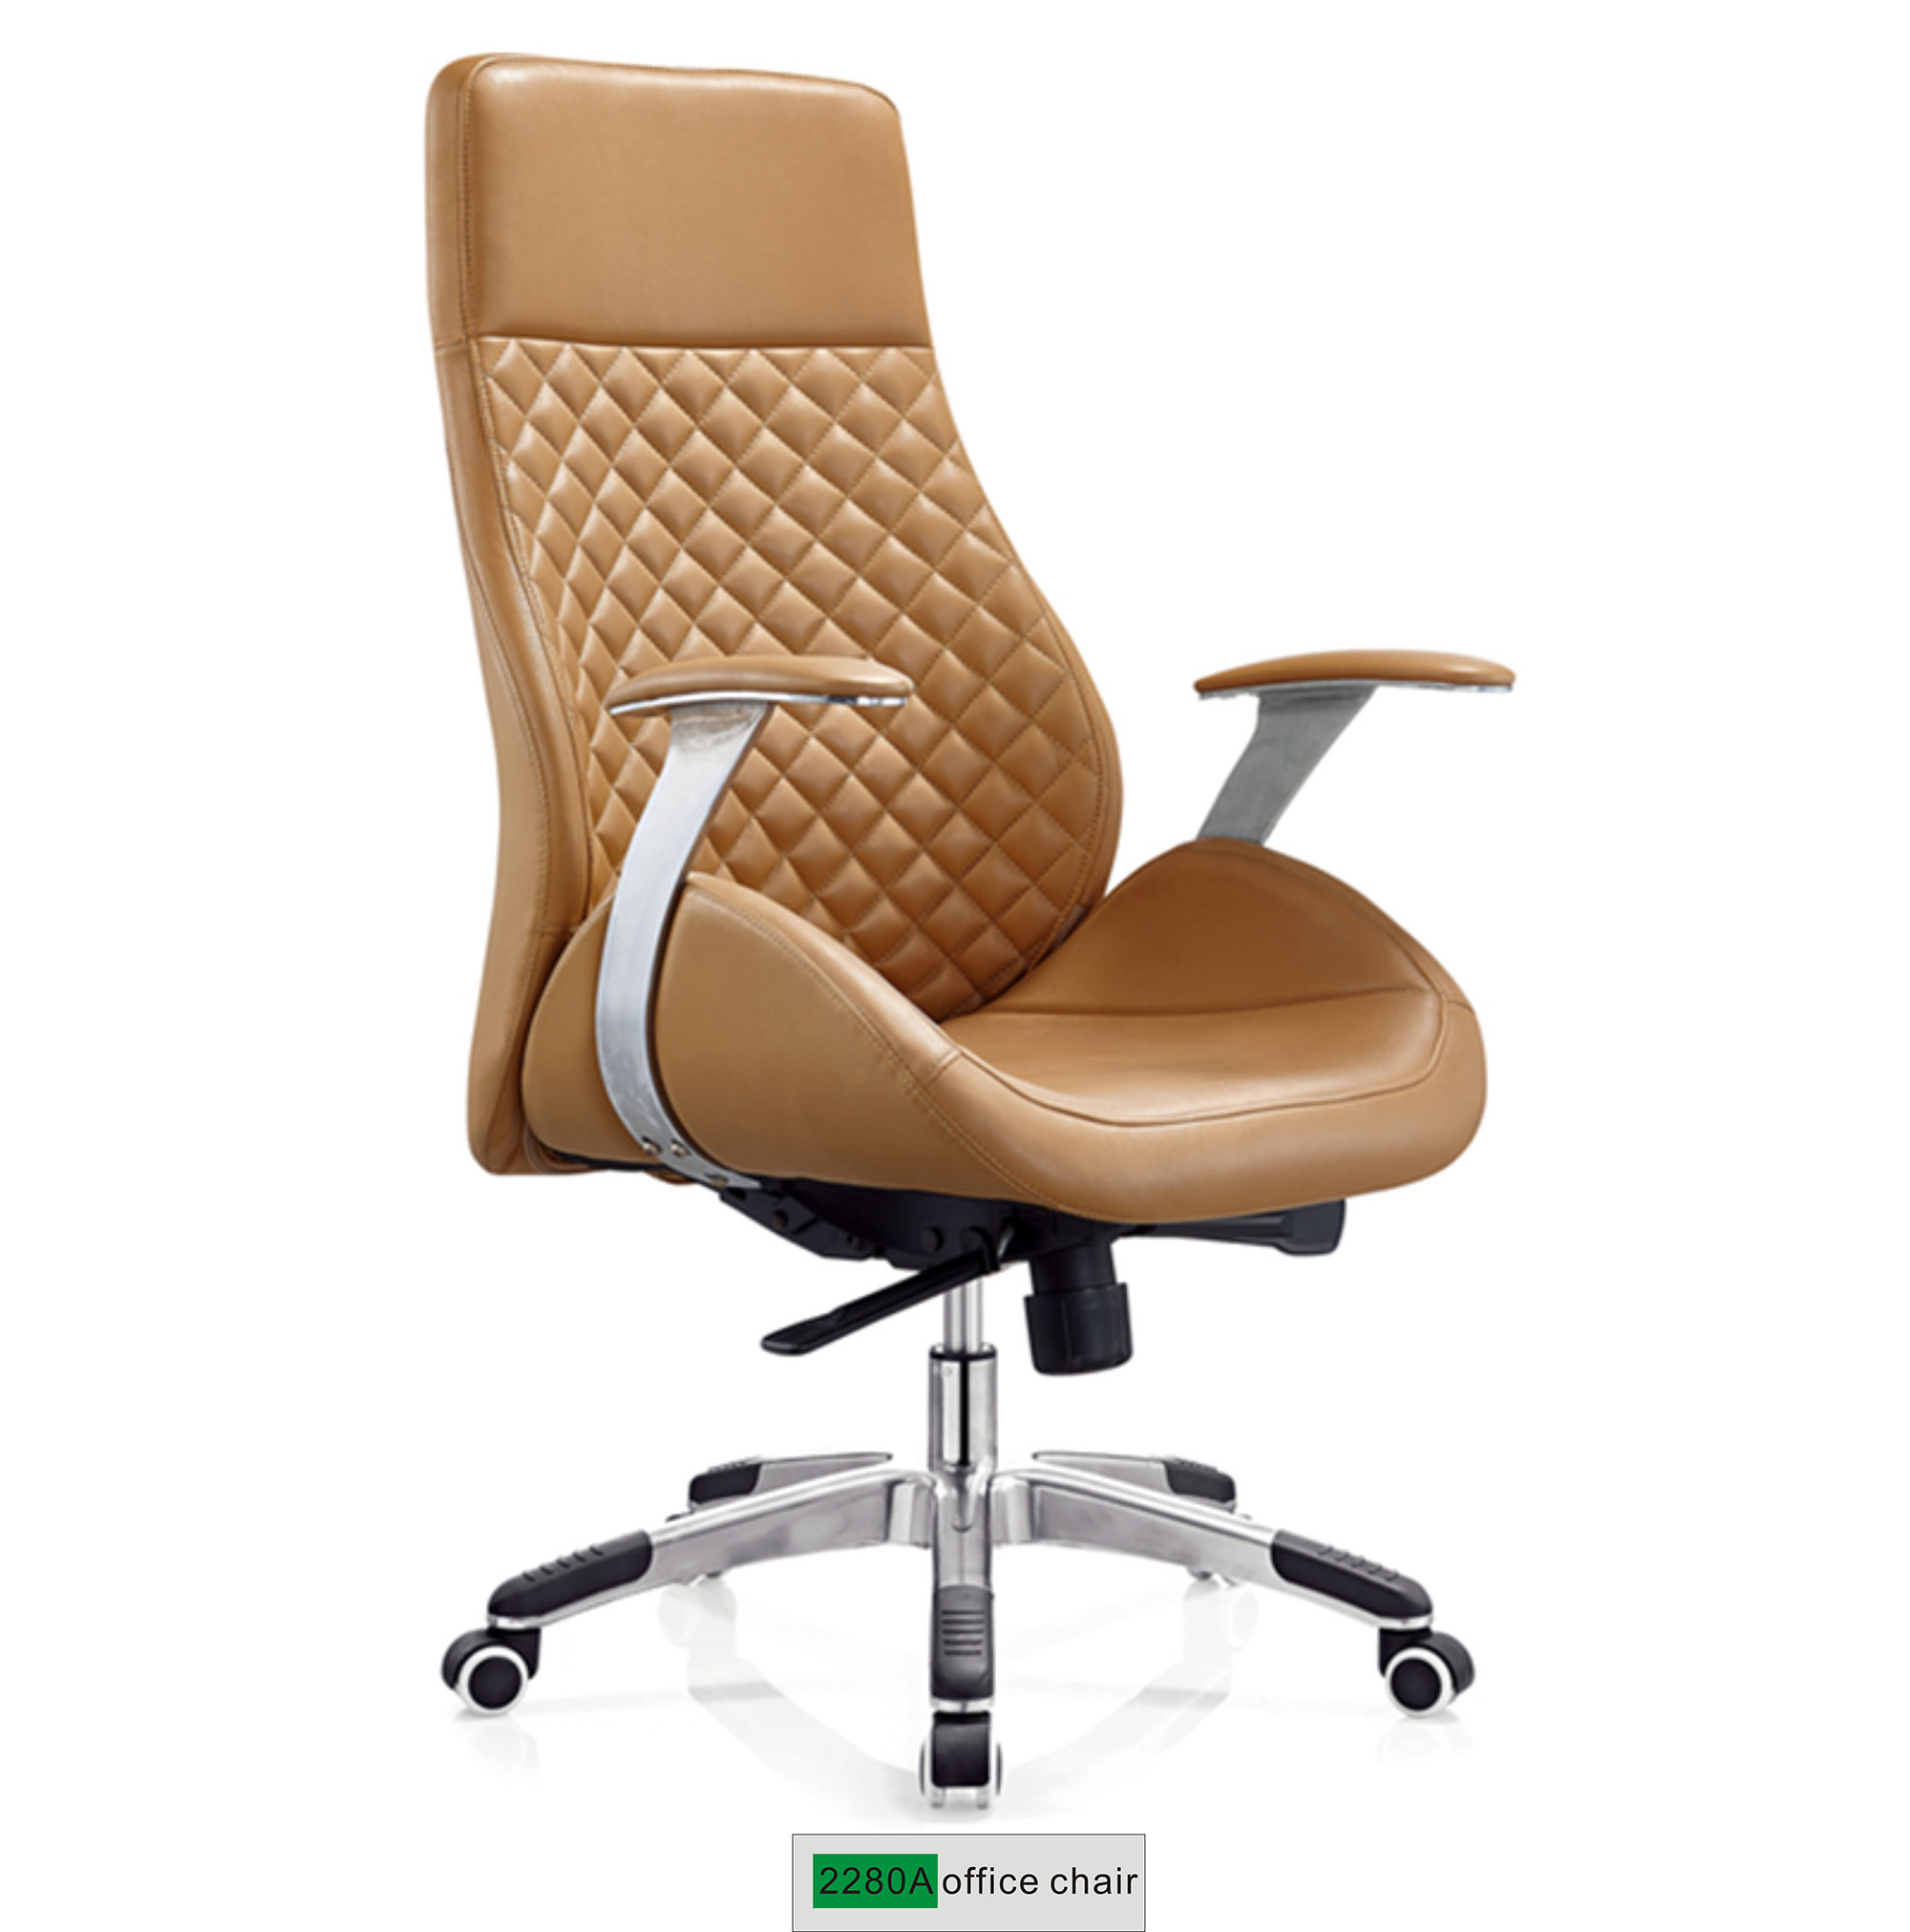 Office Chair Brown 2280A